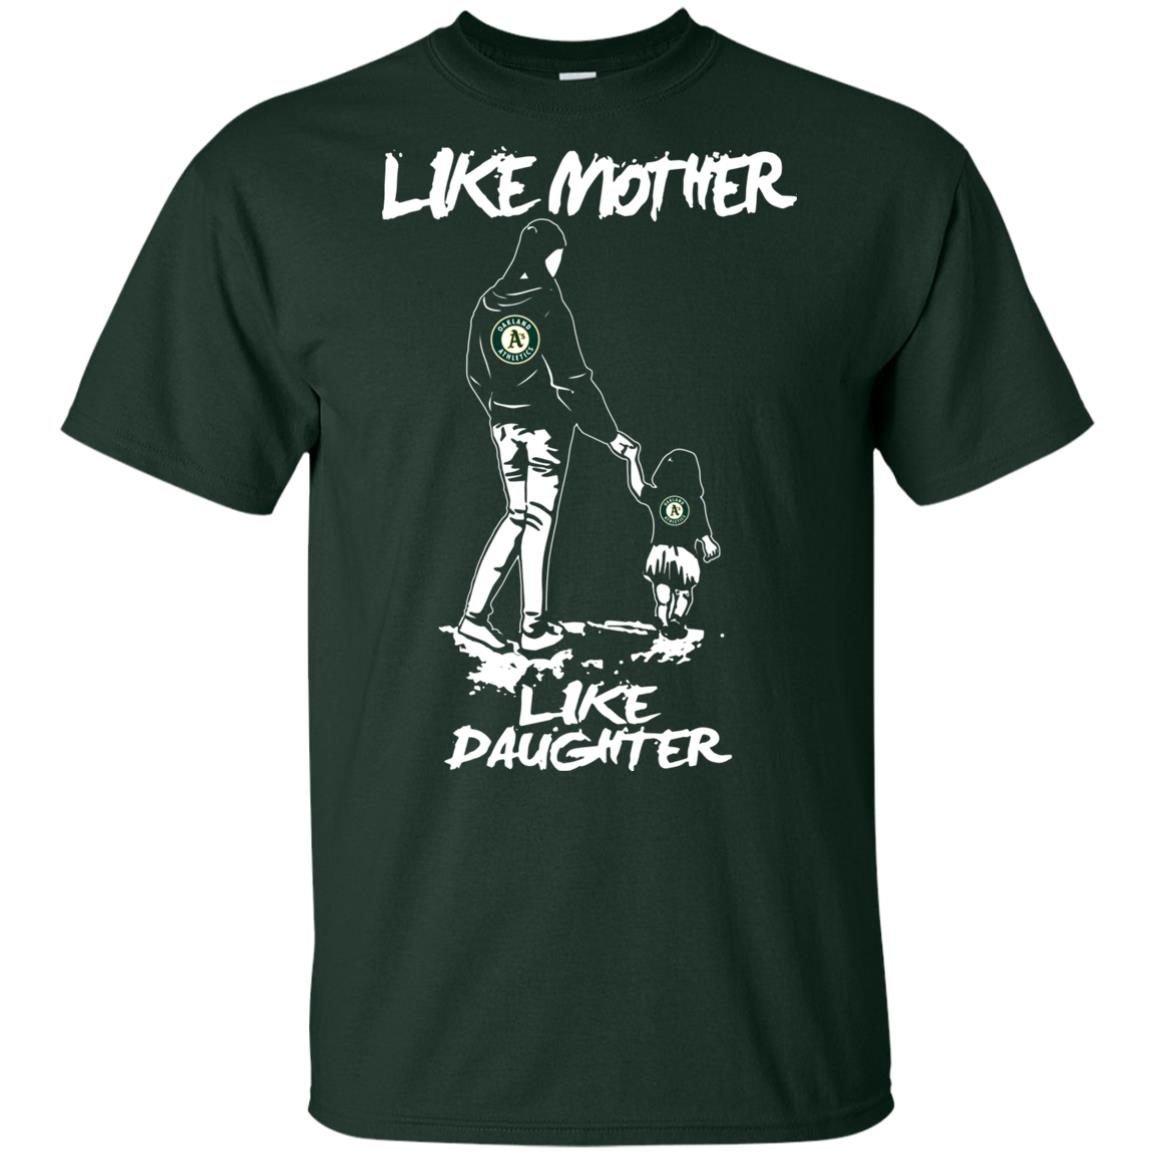 Like Mother Like Daughter Oakland Athletics T Shirts